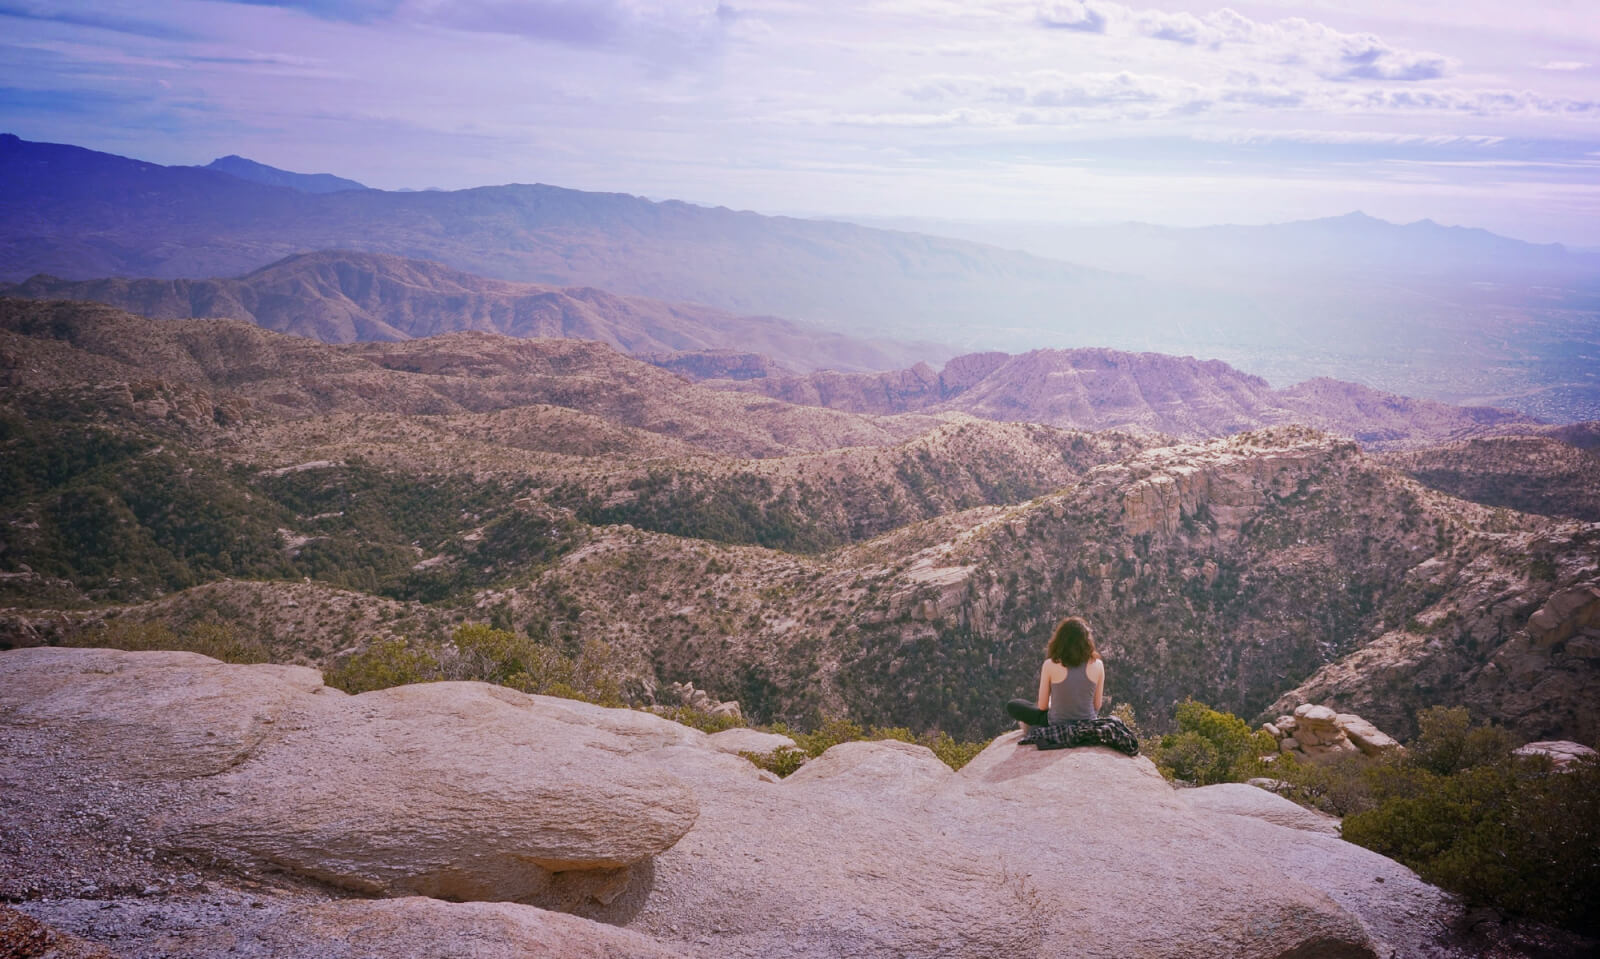 Woman sitting on rocks on Mt. Lemmon facing the view.